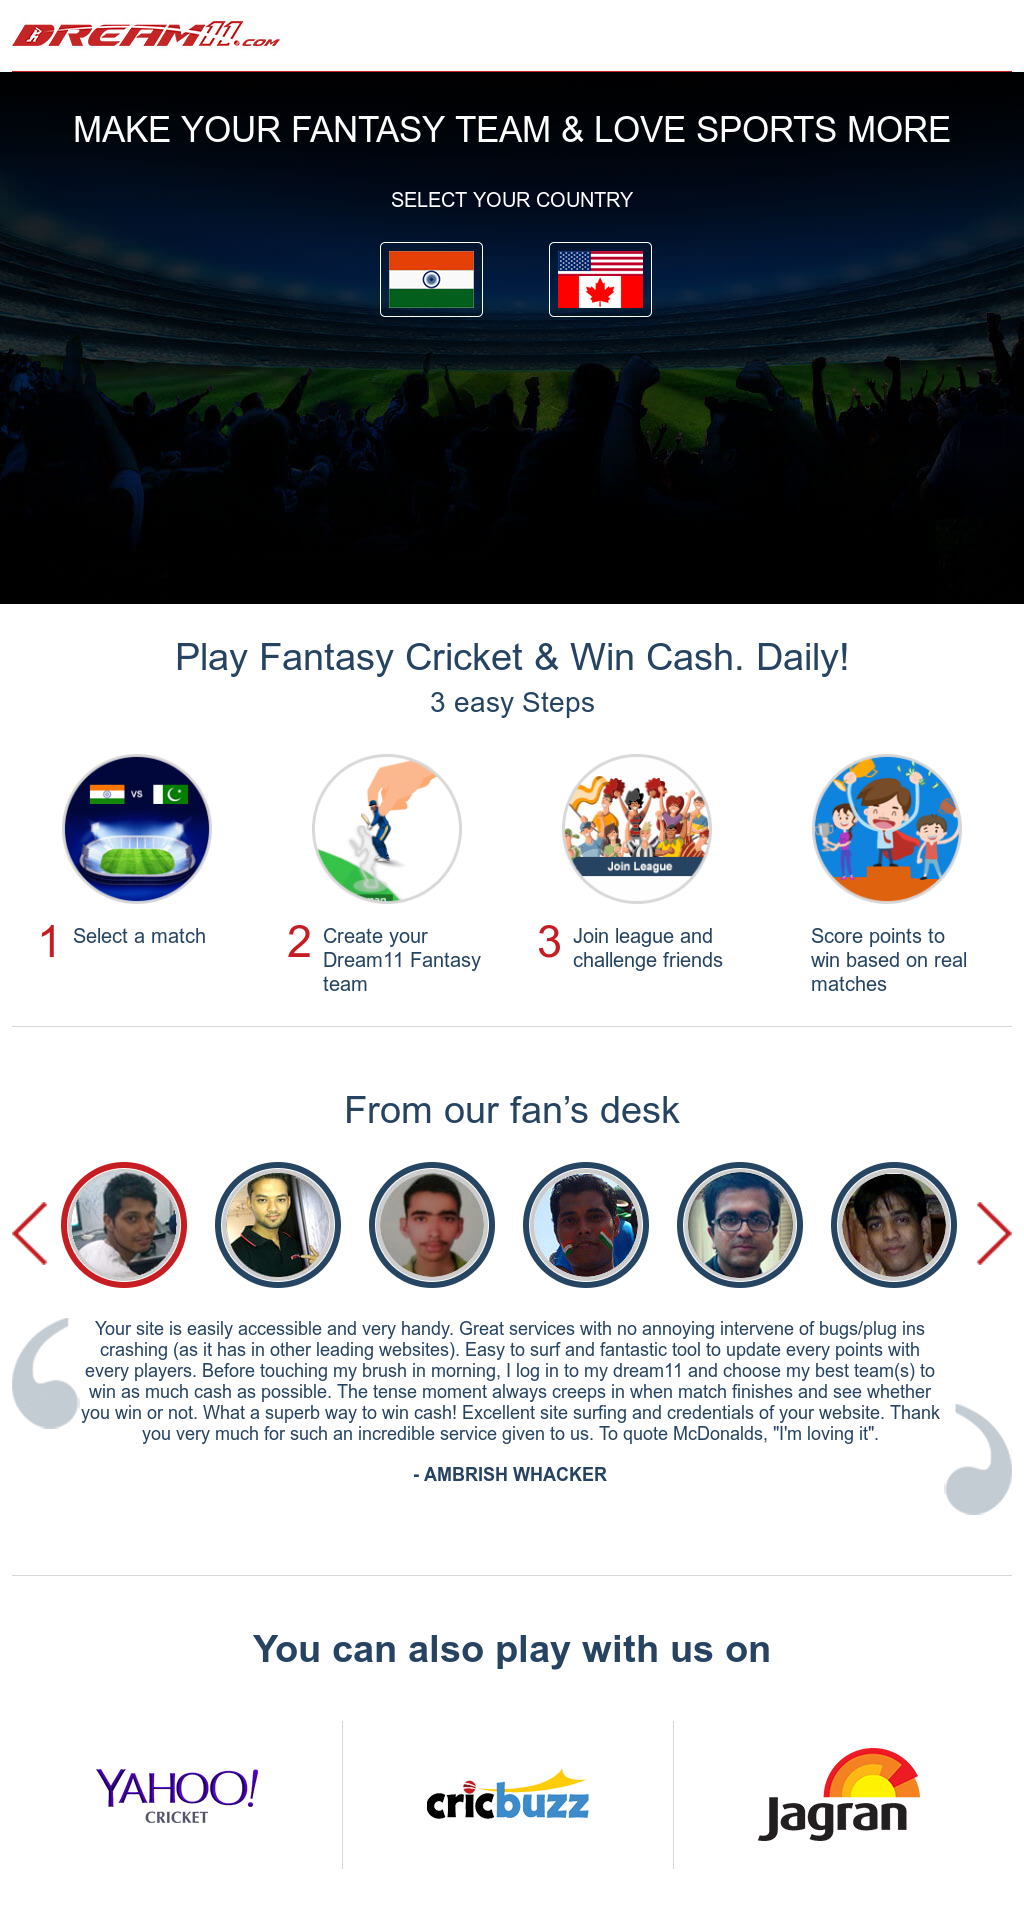 Dream11 Competitors, Revenue and Employees - Owler Company